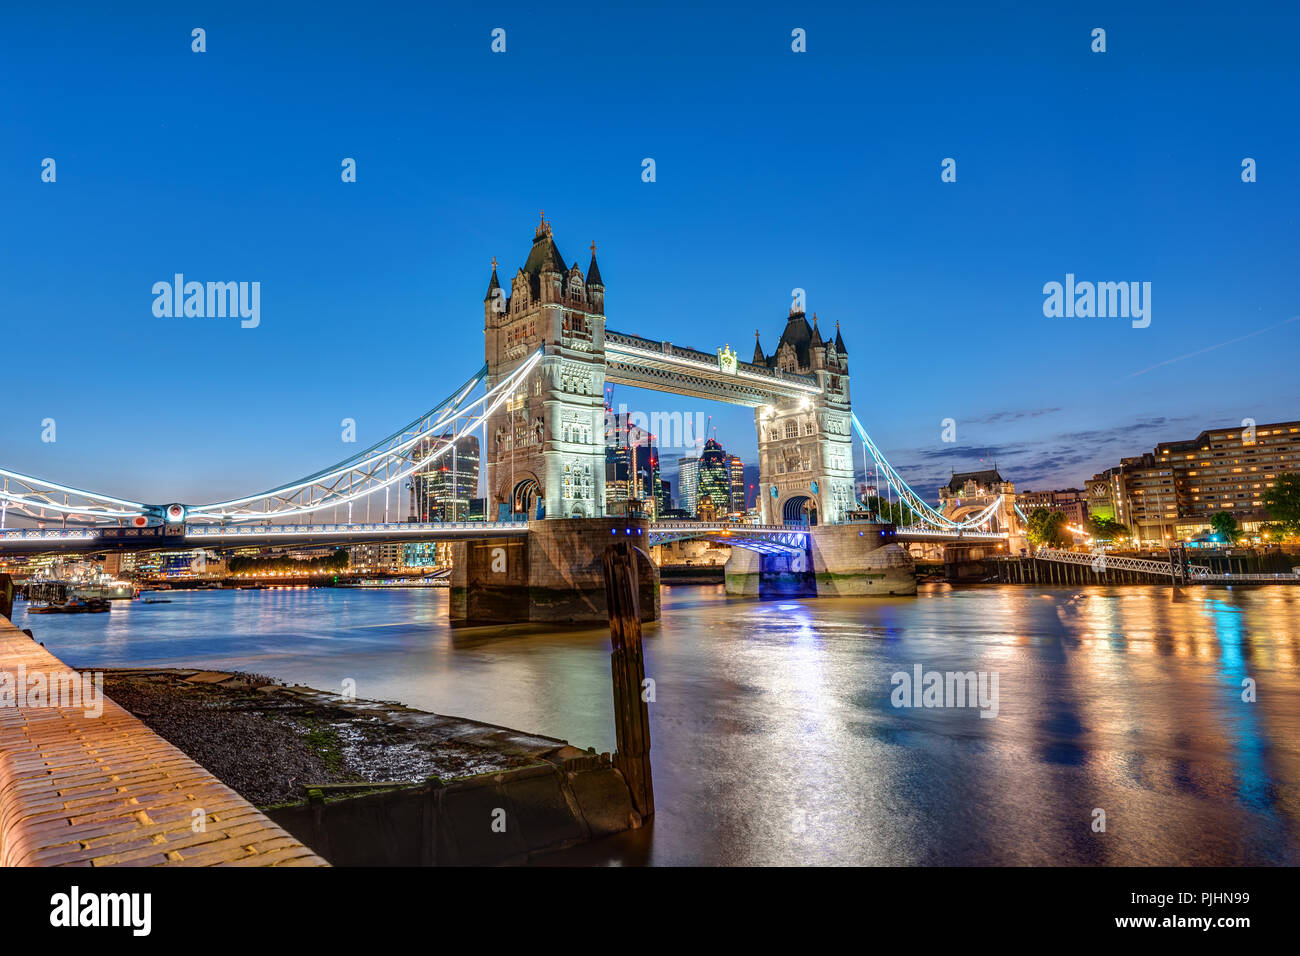 The Tower Bridge in London at night with the City in the back - Stock Image